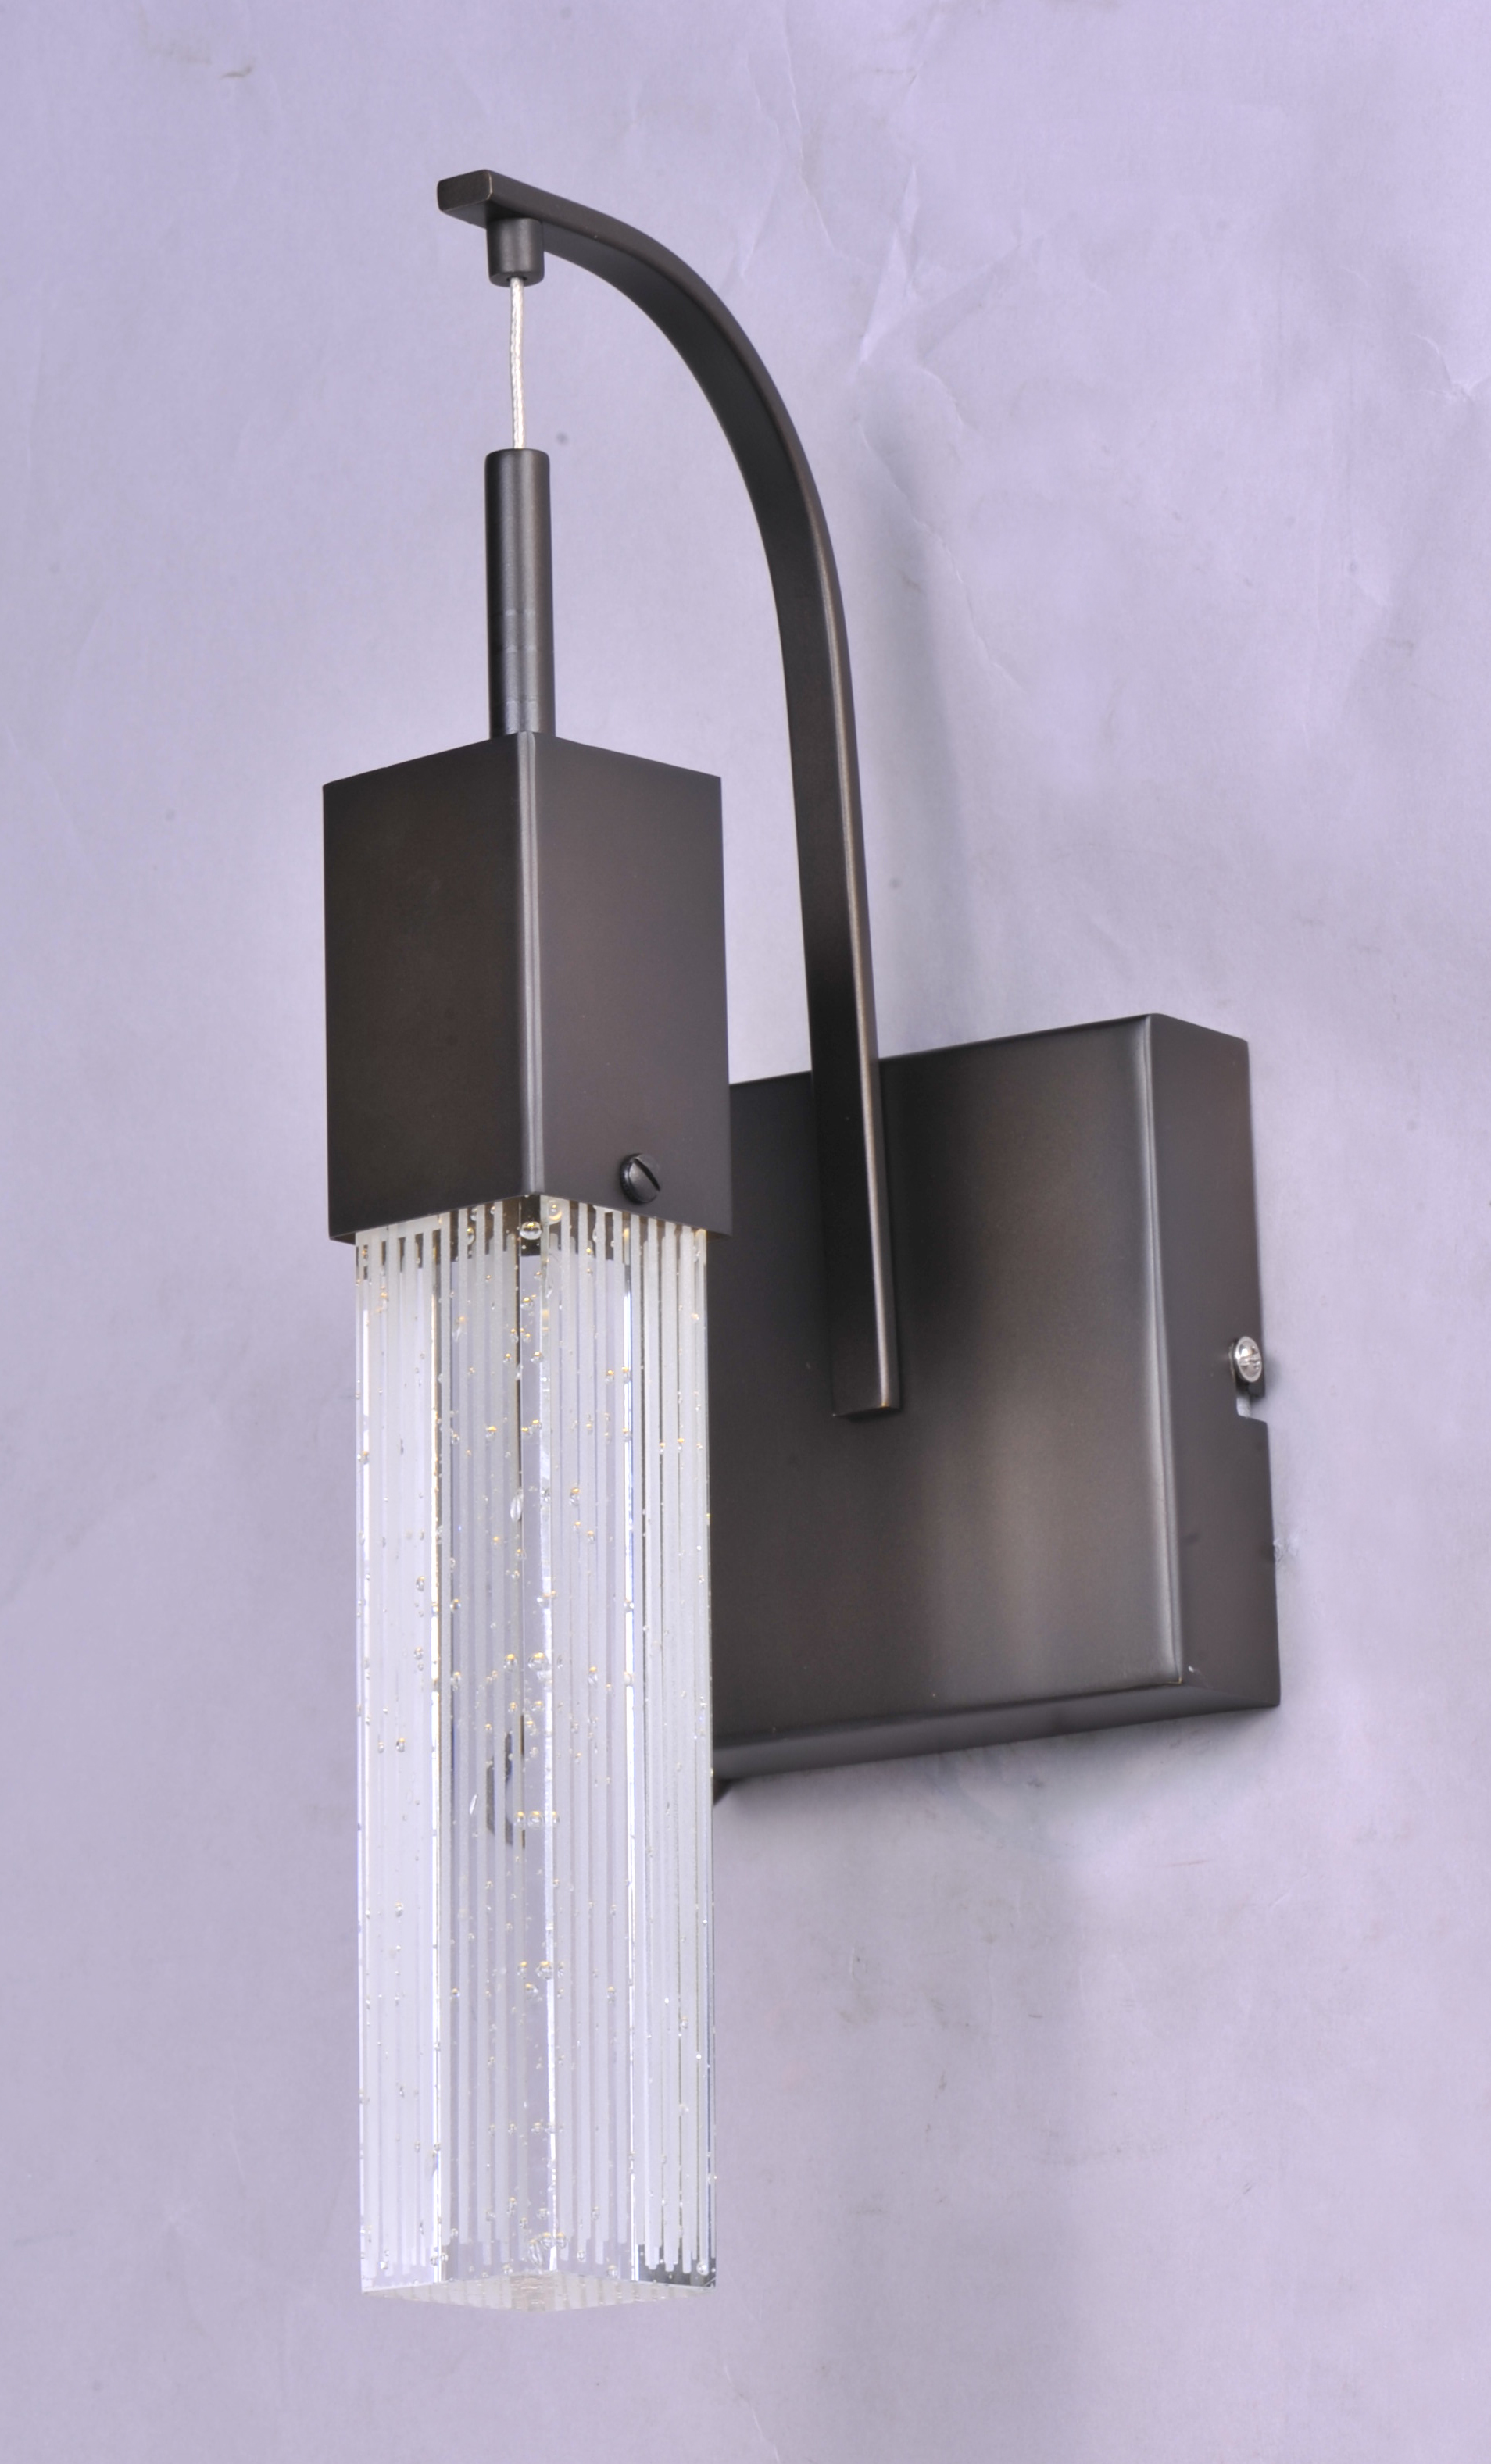 et2 fizz lighting. fizz iii, iii 1-light led wall sconce et2 lighting